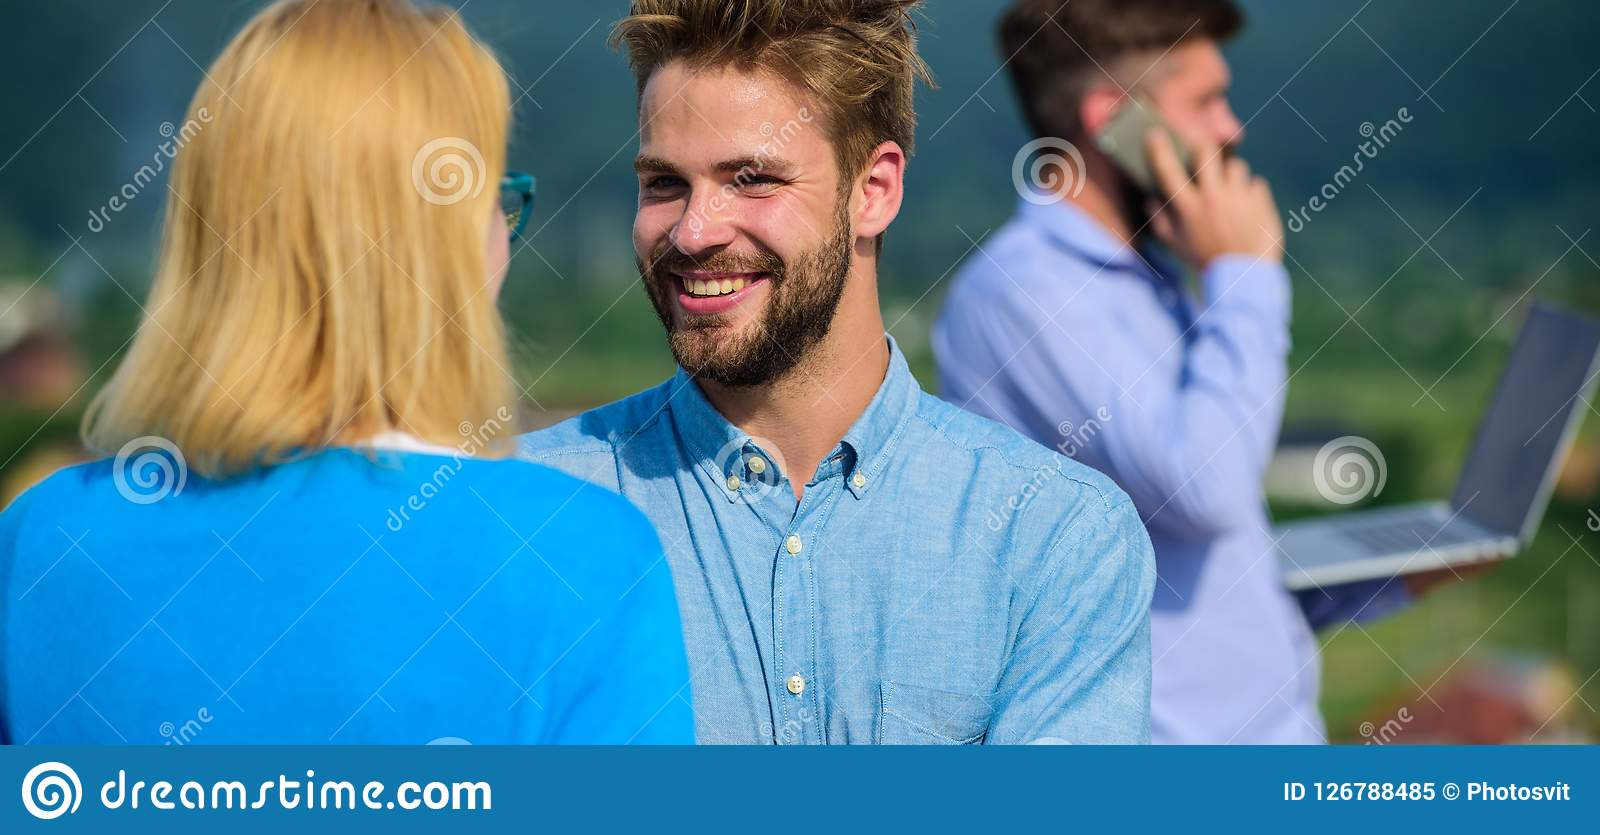 how to flirt with a guy on phone